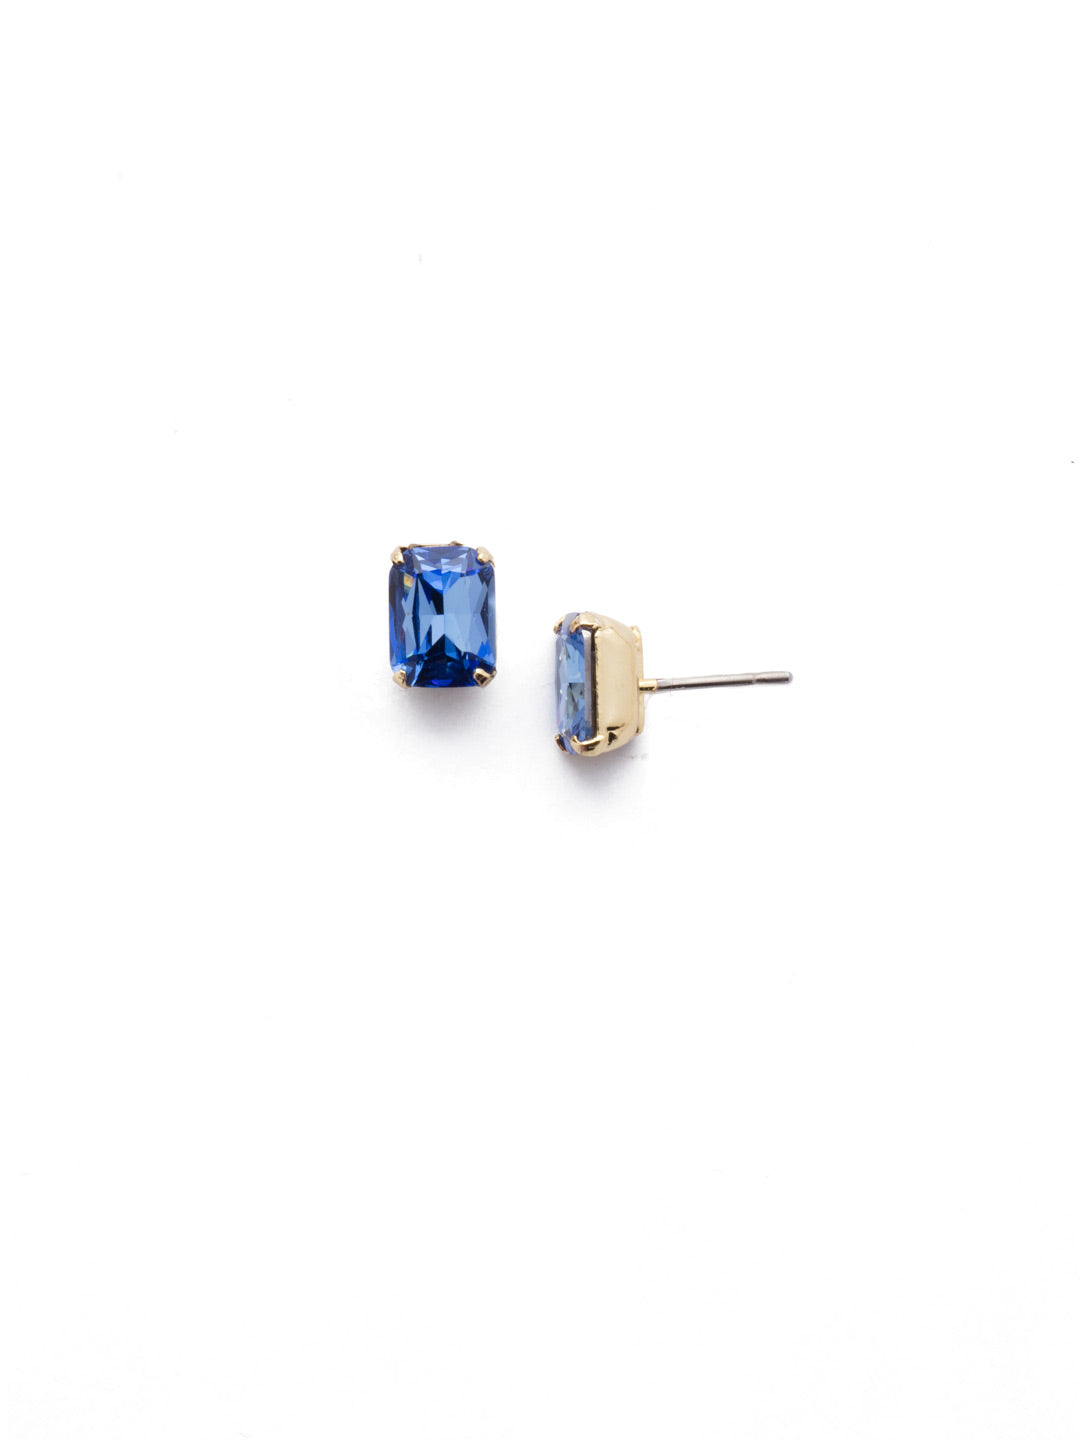 Mini Emerald Cut Stud Earrings - EBY42BGSAP